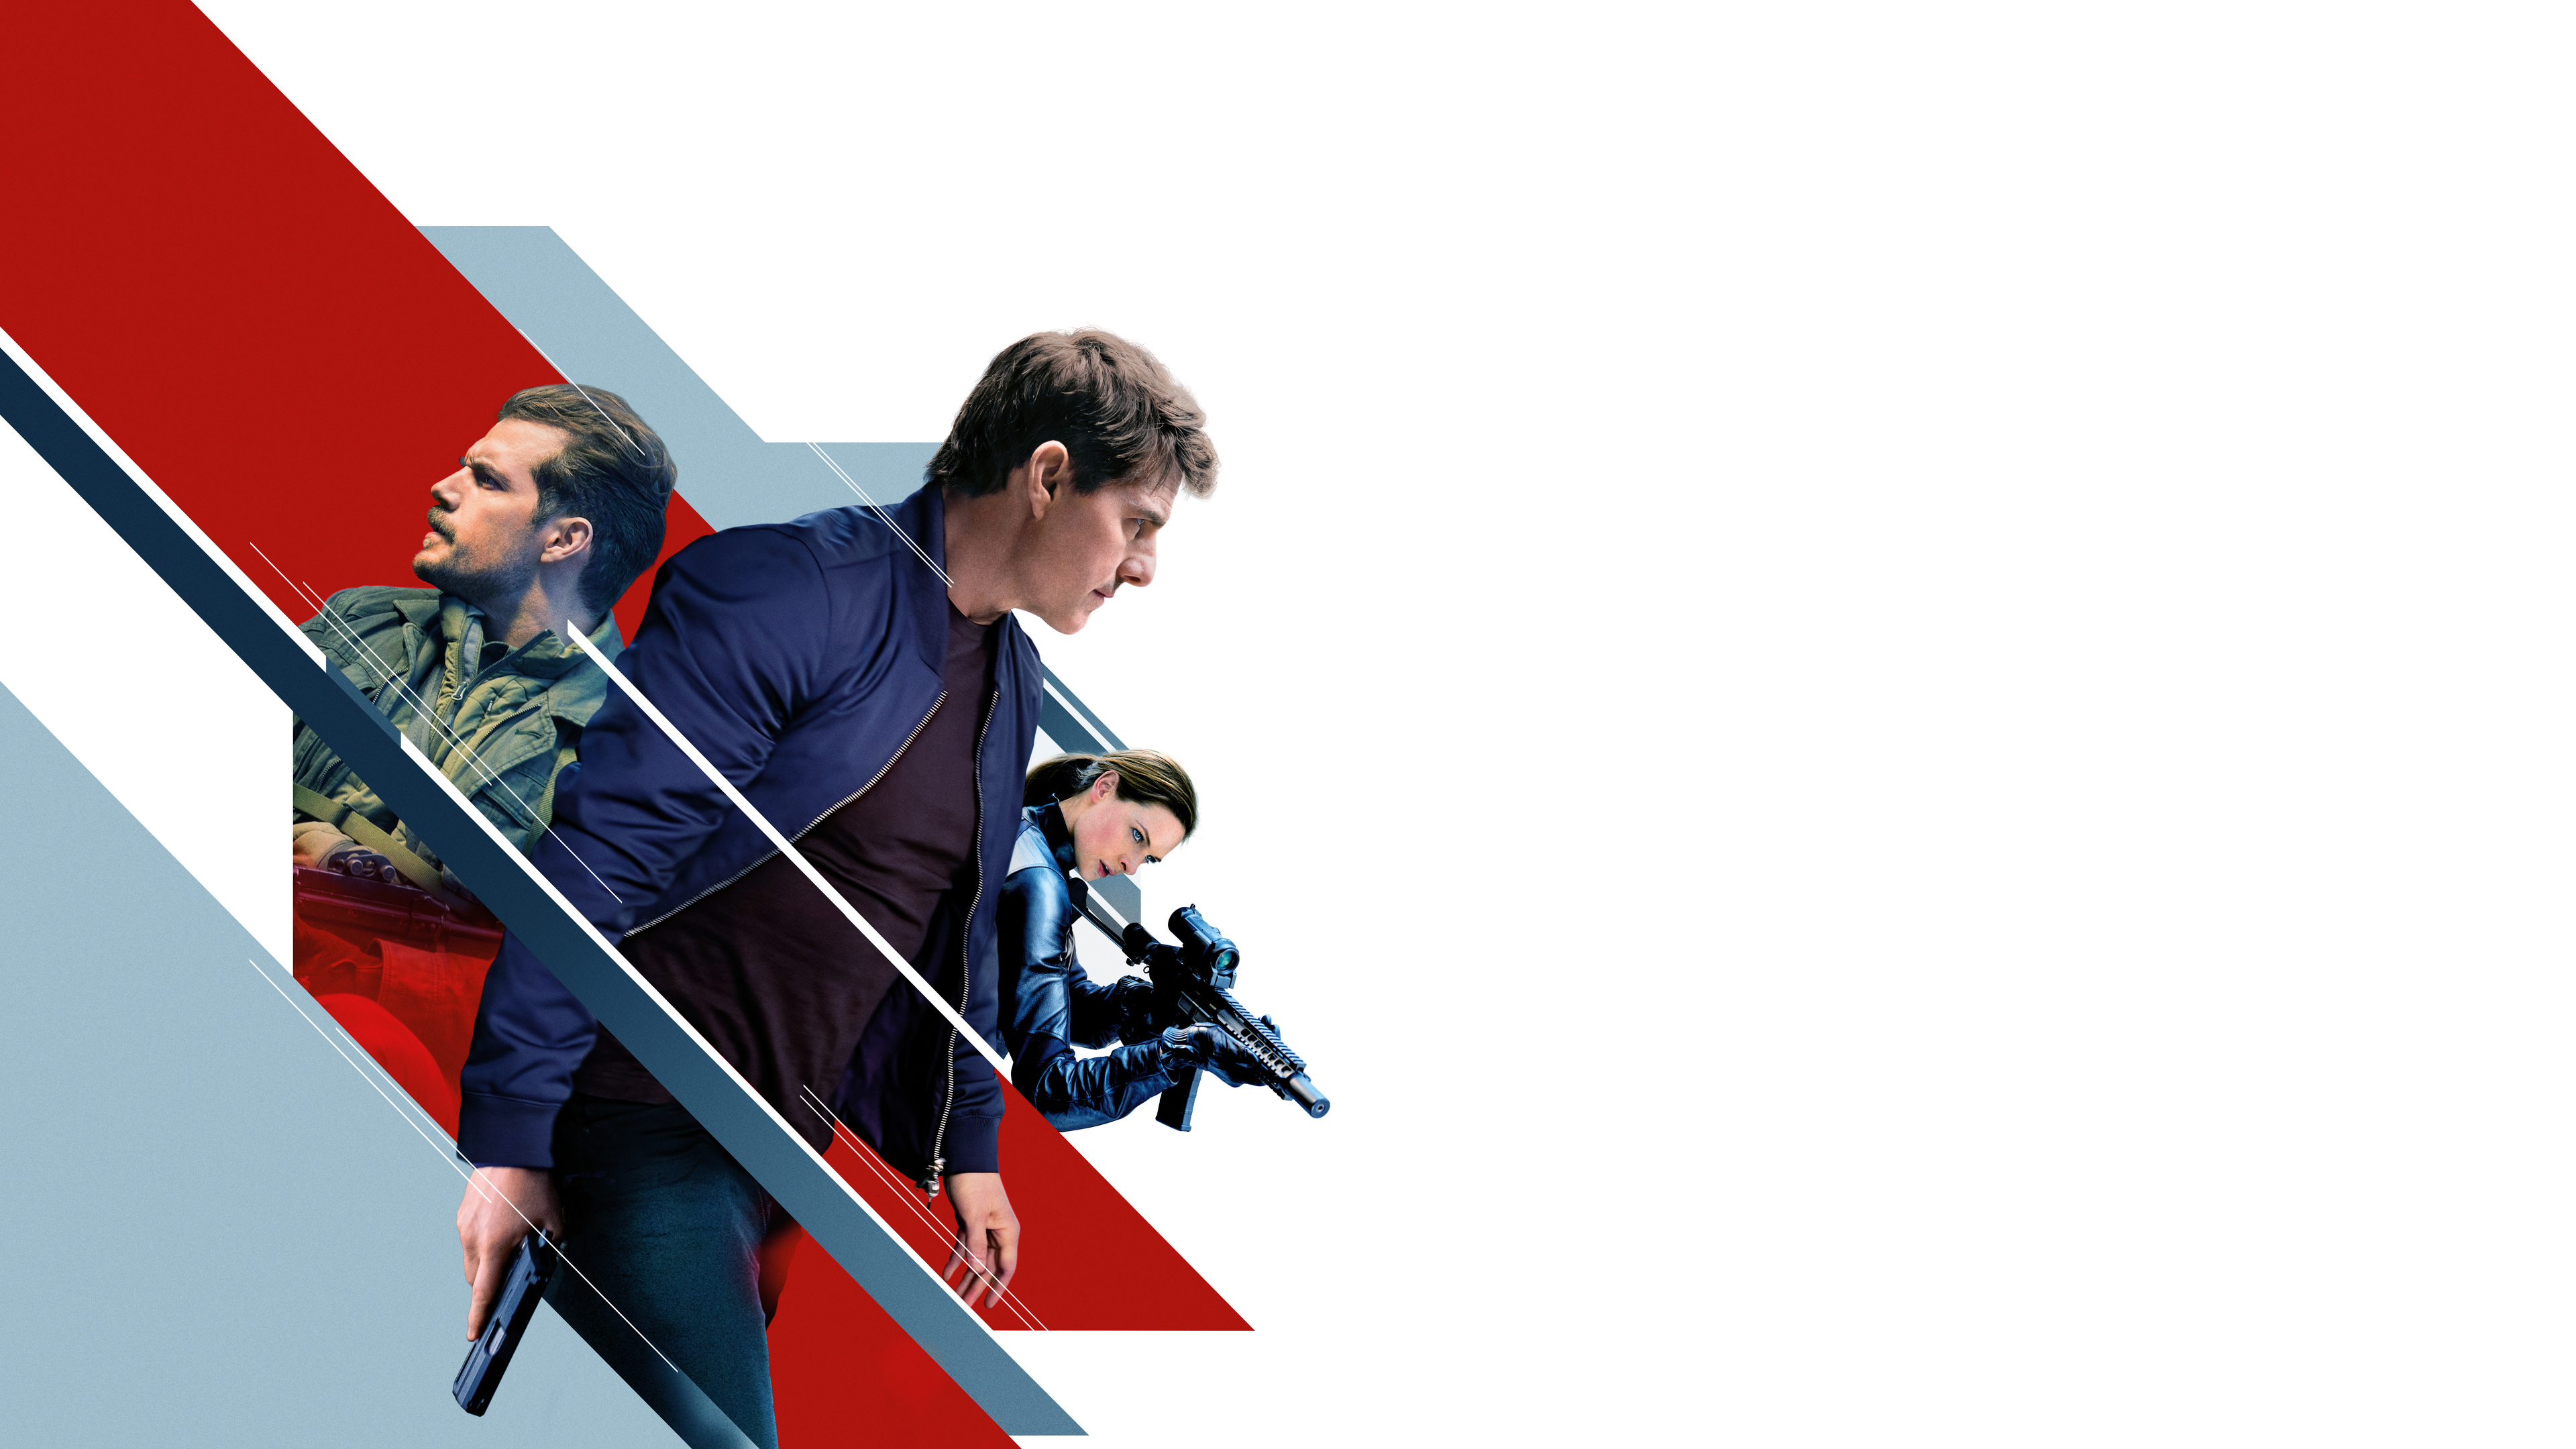 mission impossible fallout 10k 1537644732 - Mission Impossible Fallout 10k - vanessa kirby wallpapers, tom cruise wallpapers, movies wallpapers, mission impossible fallout wallpapers, mission impossible 6 wallpapers, henry cavill wallpapers, hd-wallpapers, 8k wallpapers, 5k wallpapers, 4k-wallpapers, 2018-movies-wallpapers, 10k wallpapers